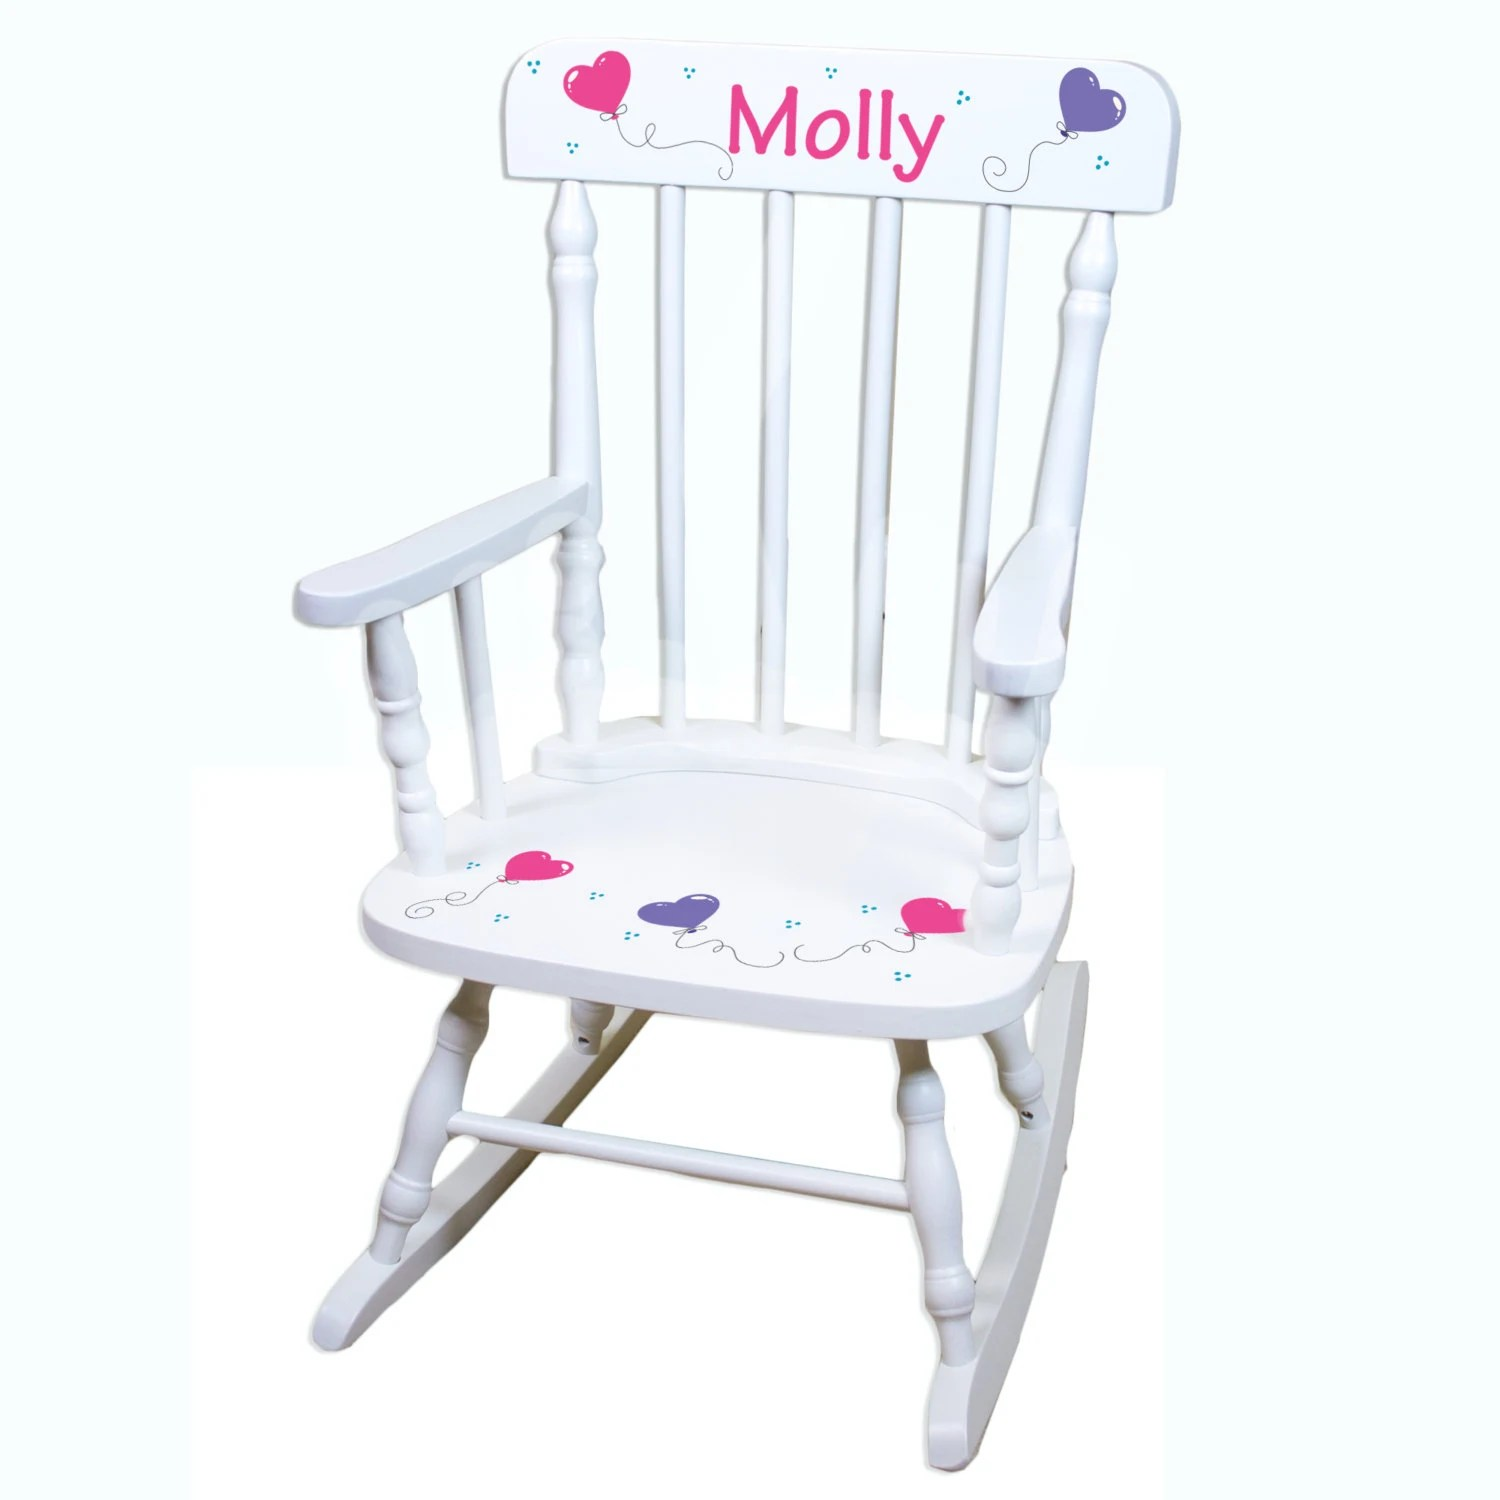 Personalized Chairs Hand Painted Personalized Girls White Spindle Rocking Chair